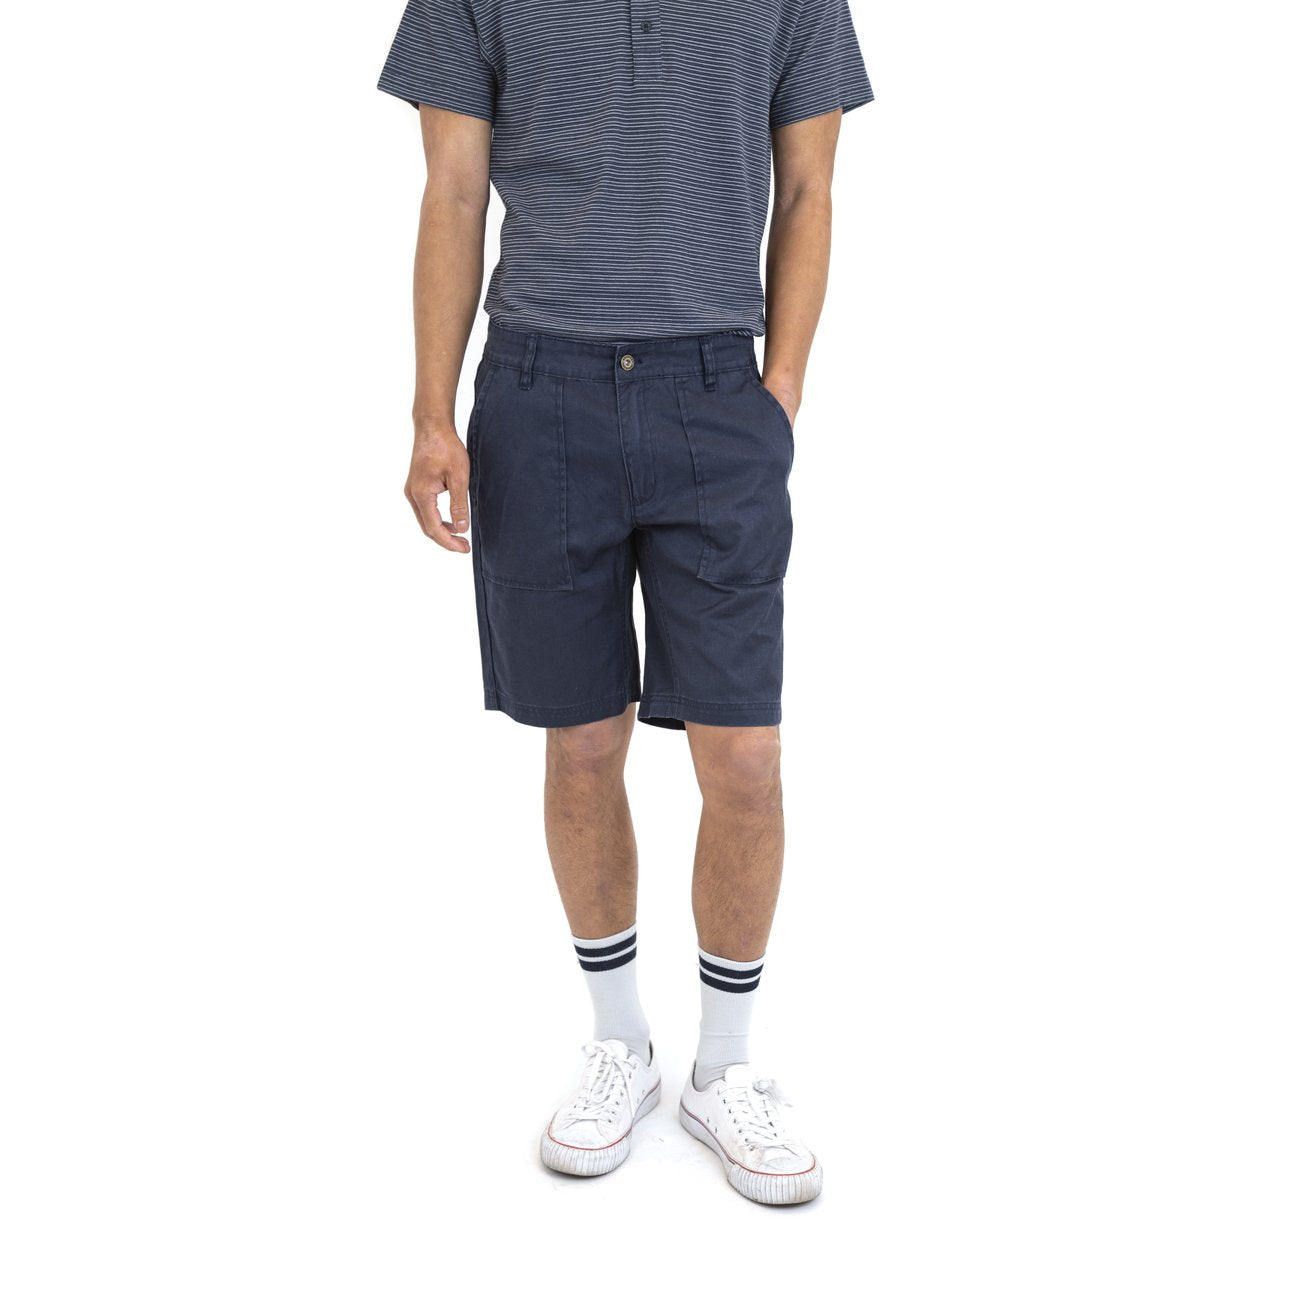 Wildes Short- Navy